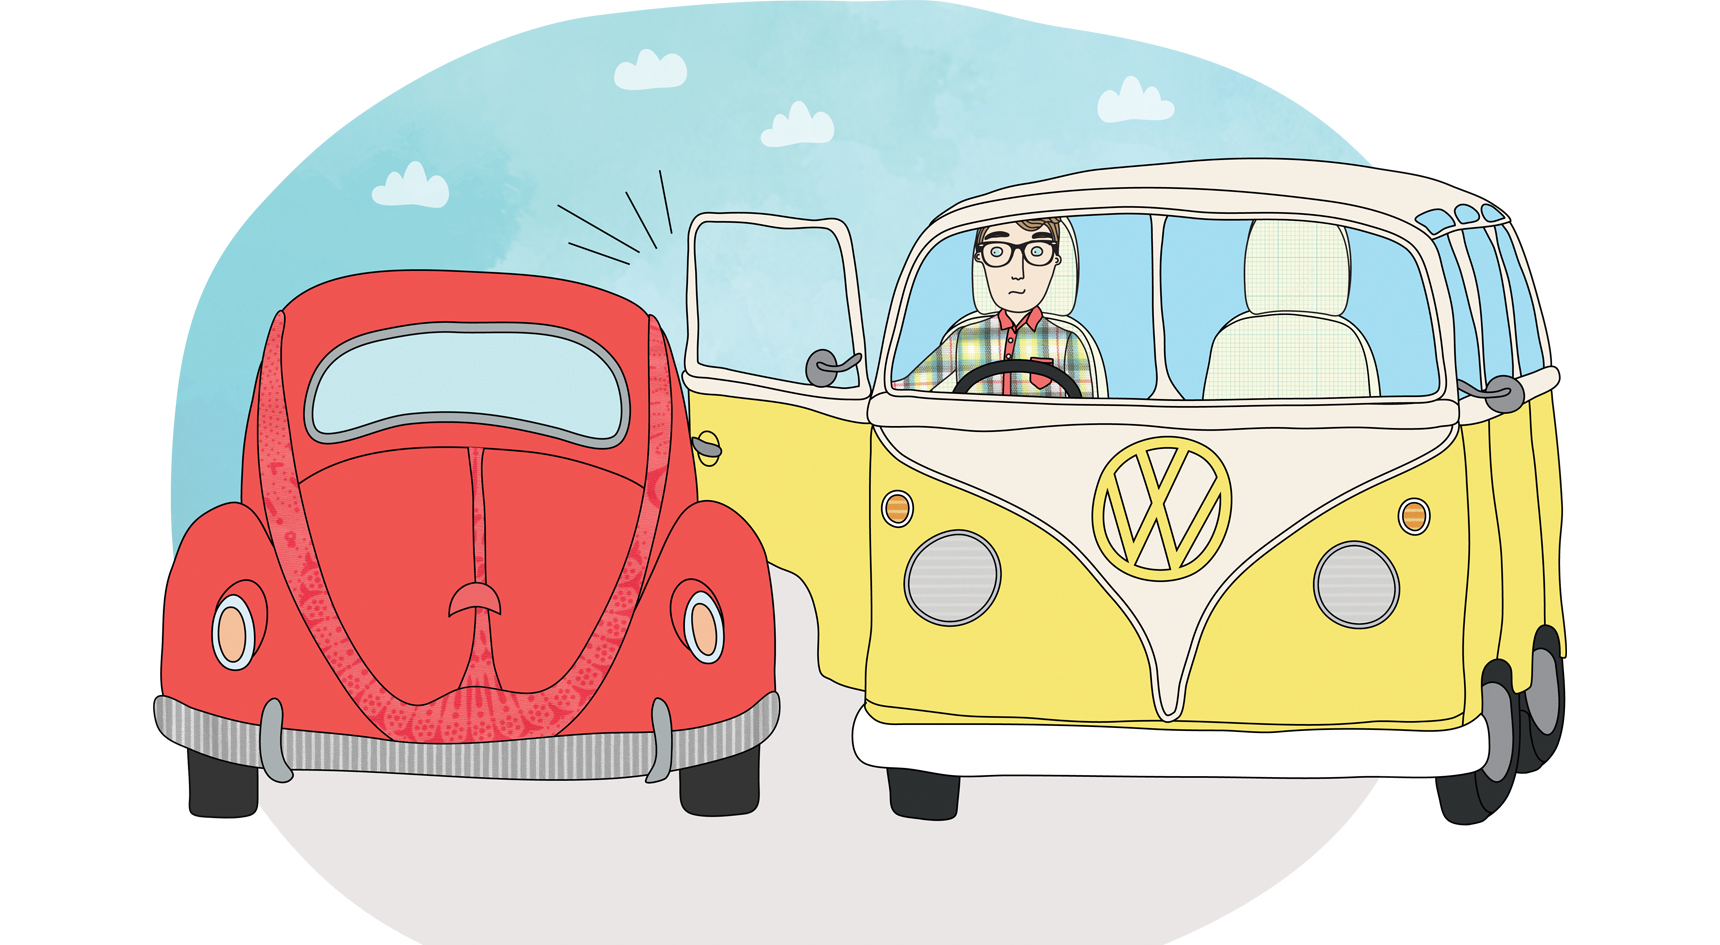 An illustration of a man in a van trying to open the door and hitting another red vehicle.